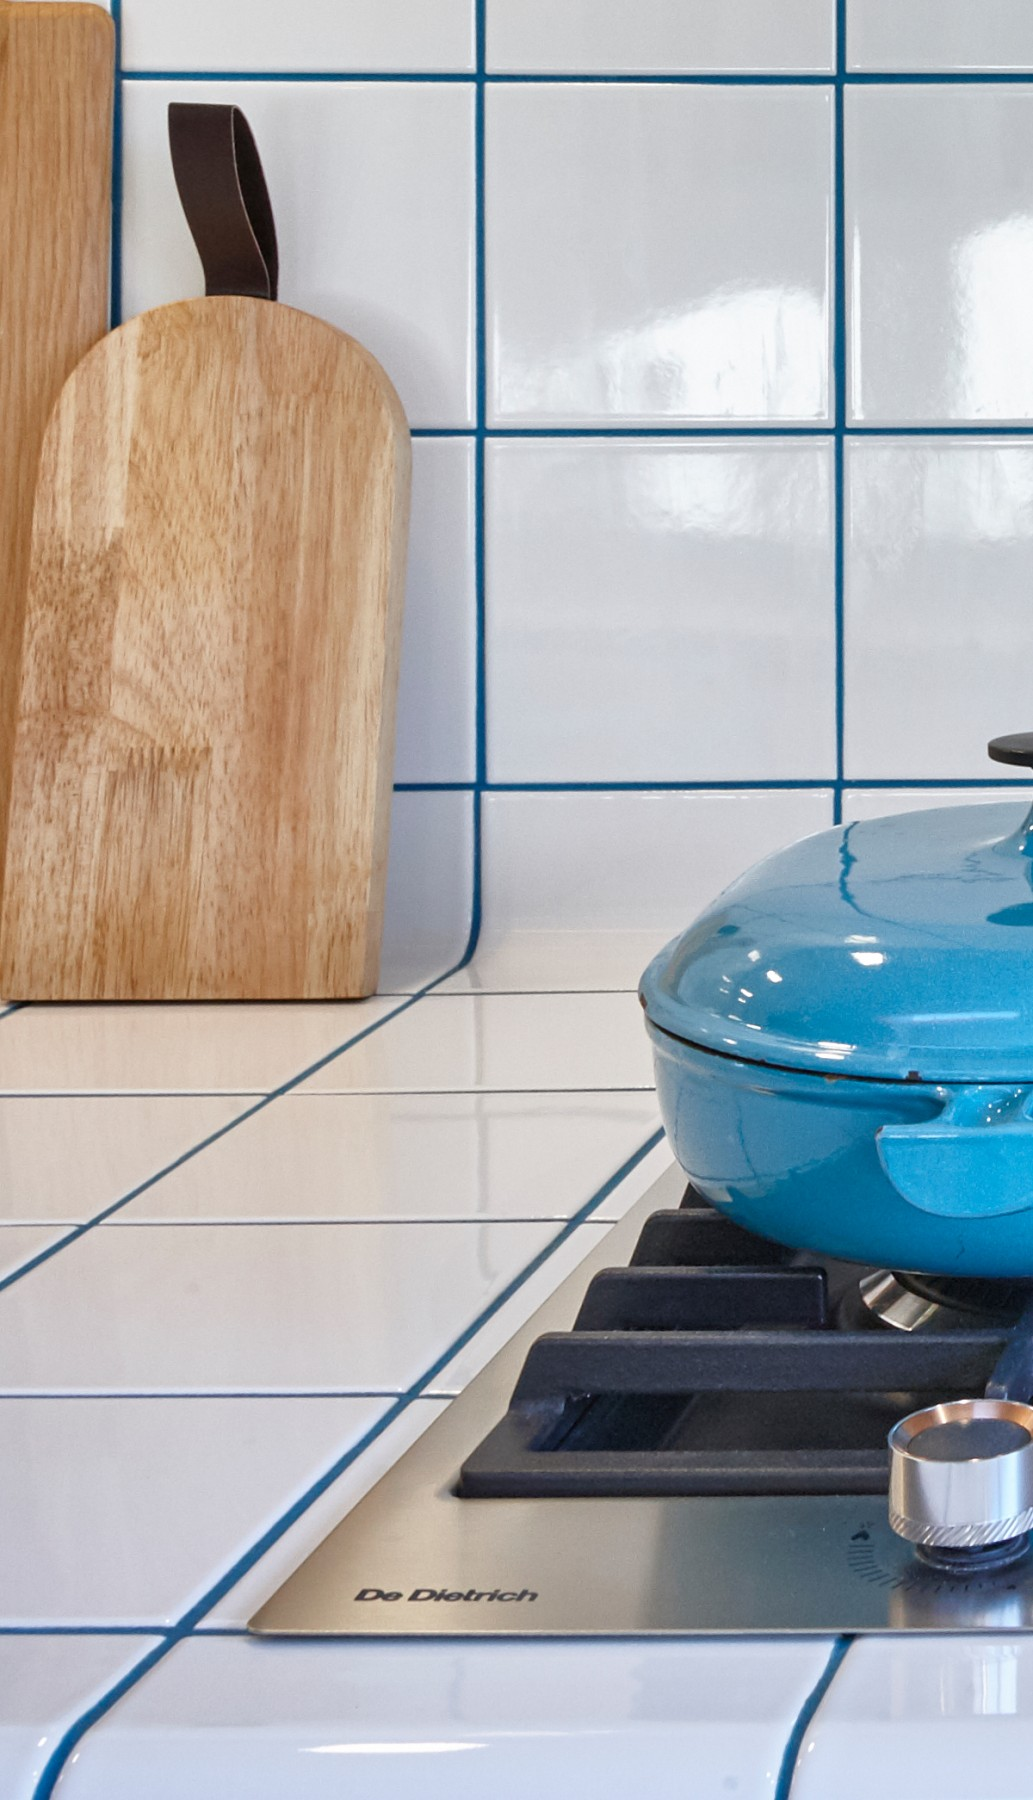 3d tiles with colored grout, functional and construction modern rounded tiles available in multiple colors